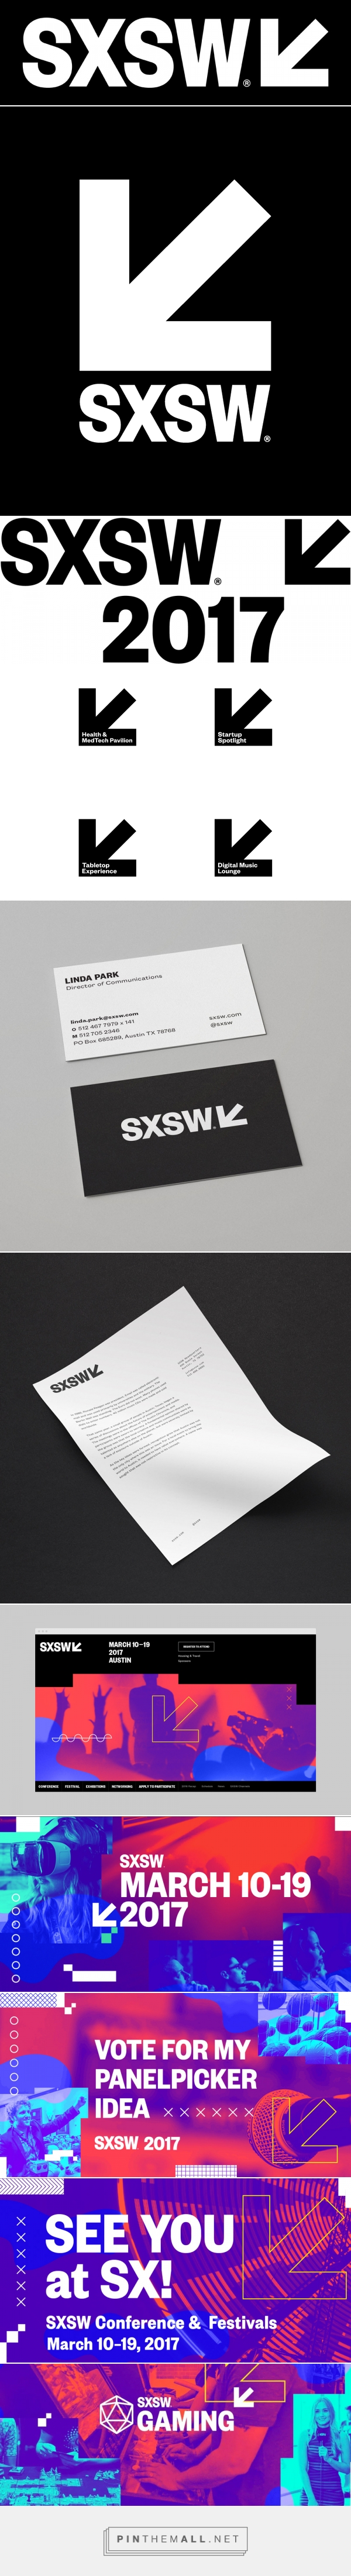 Brand New: New Logo and Identity for SXSW by Foxtrot... - a grouped images picture - Pin Them All